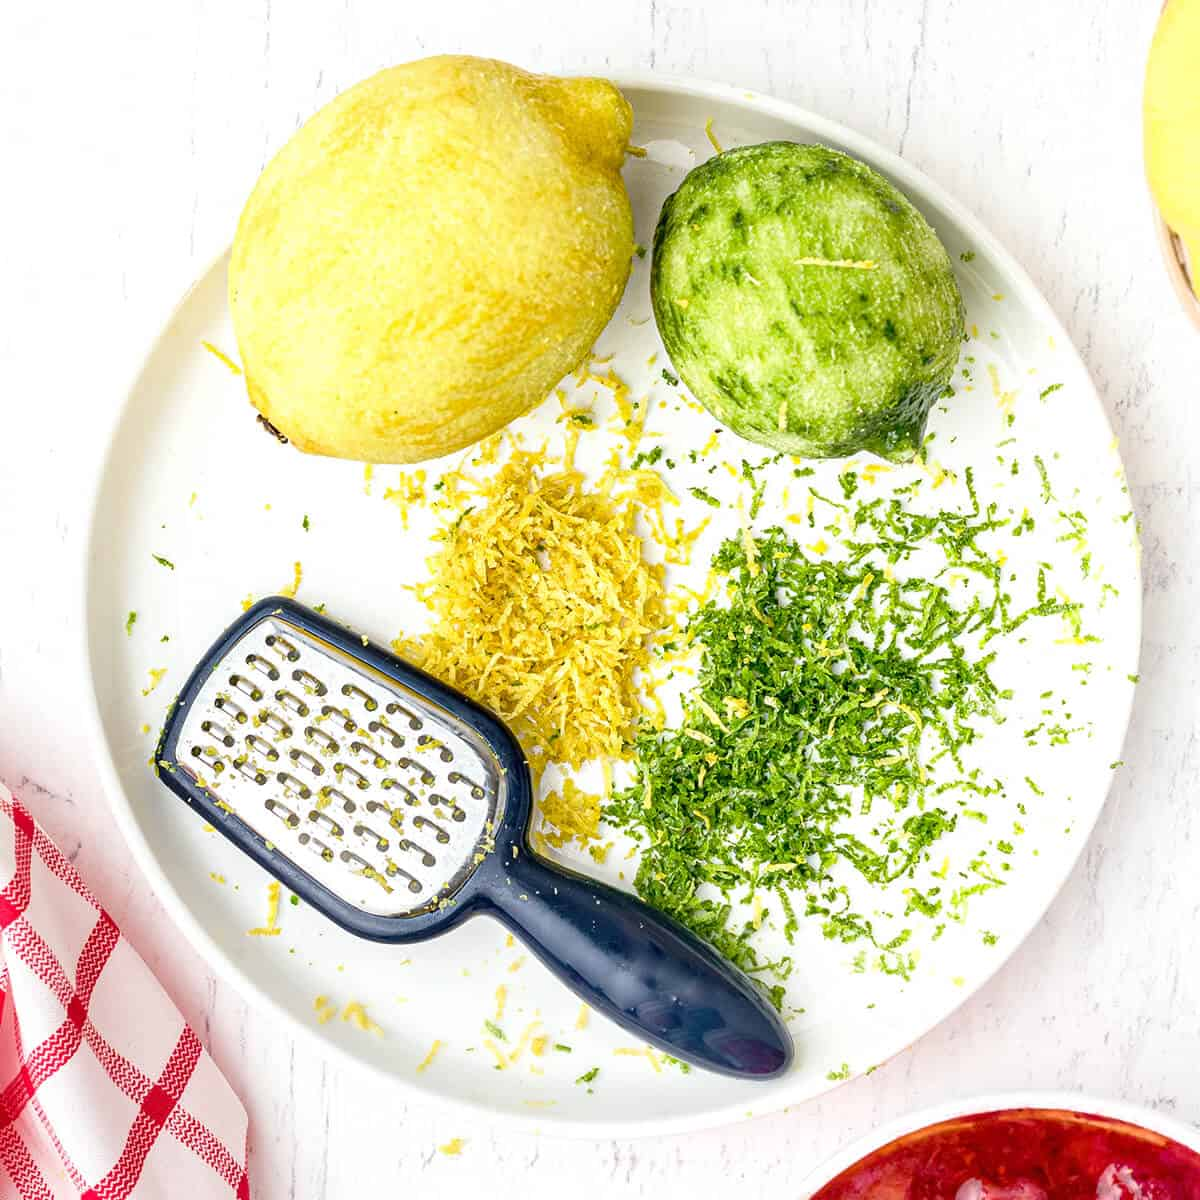 Lemon and lime zest on a plate with a grater.